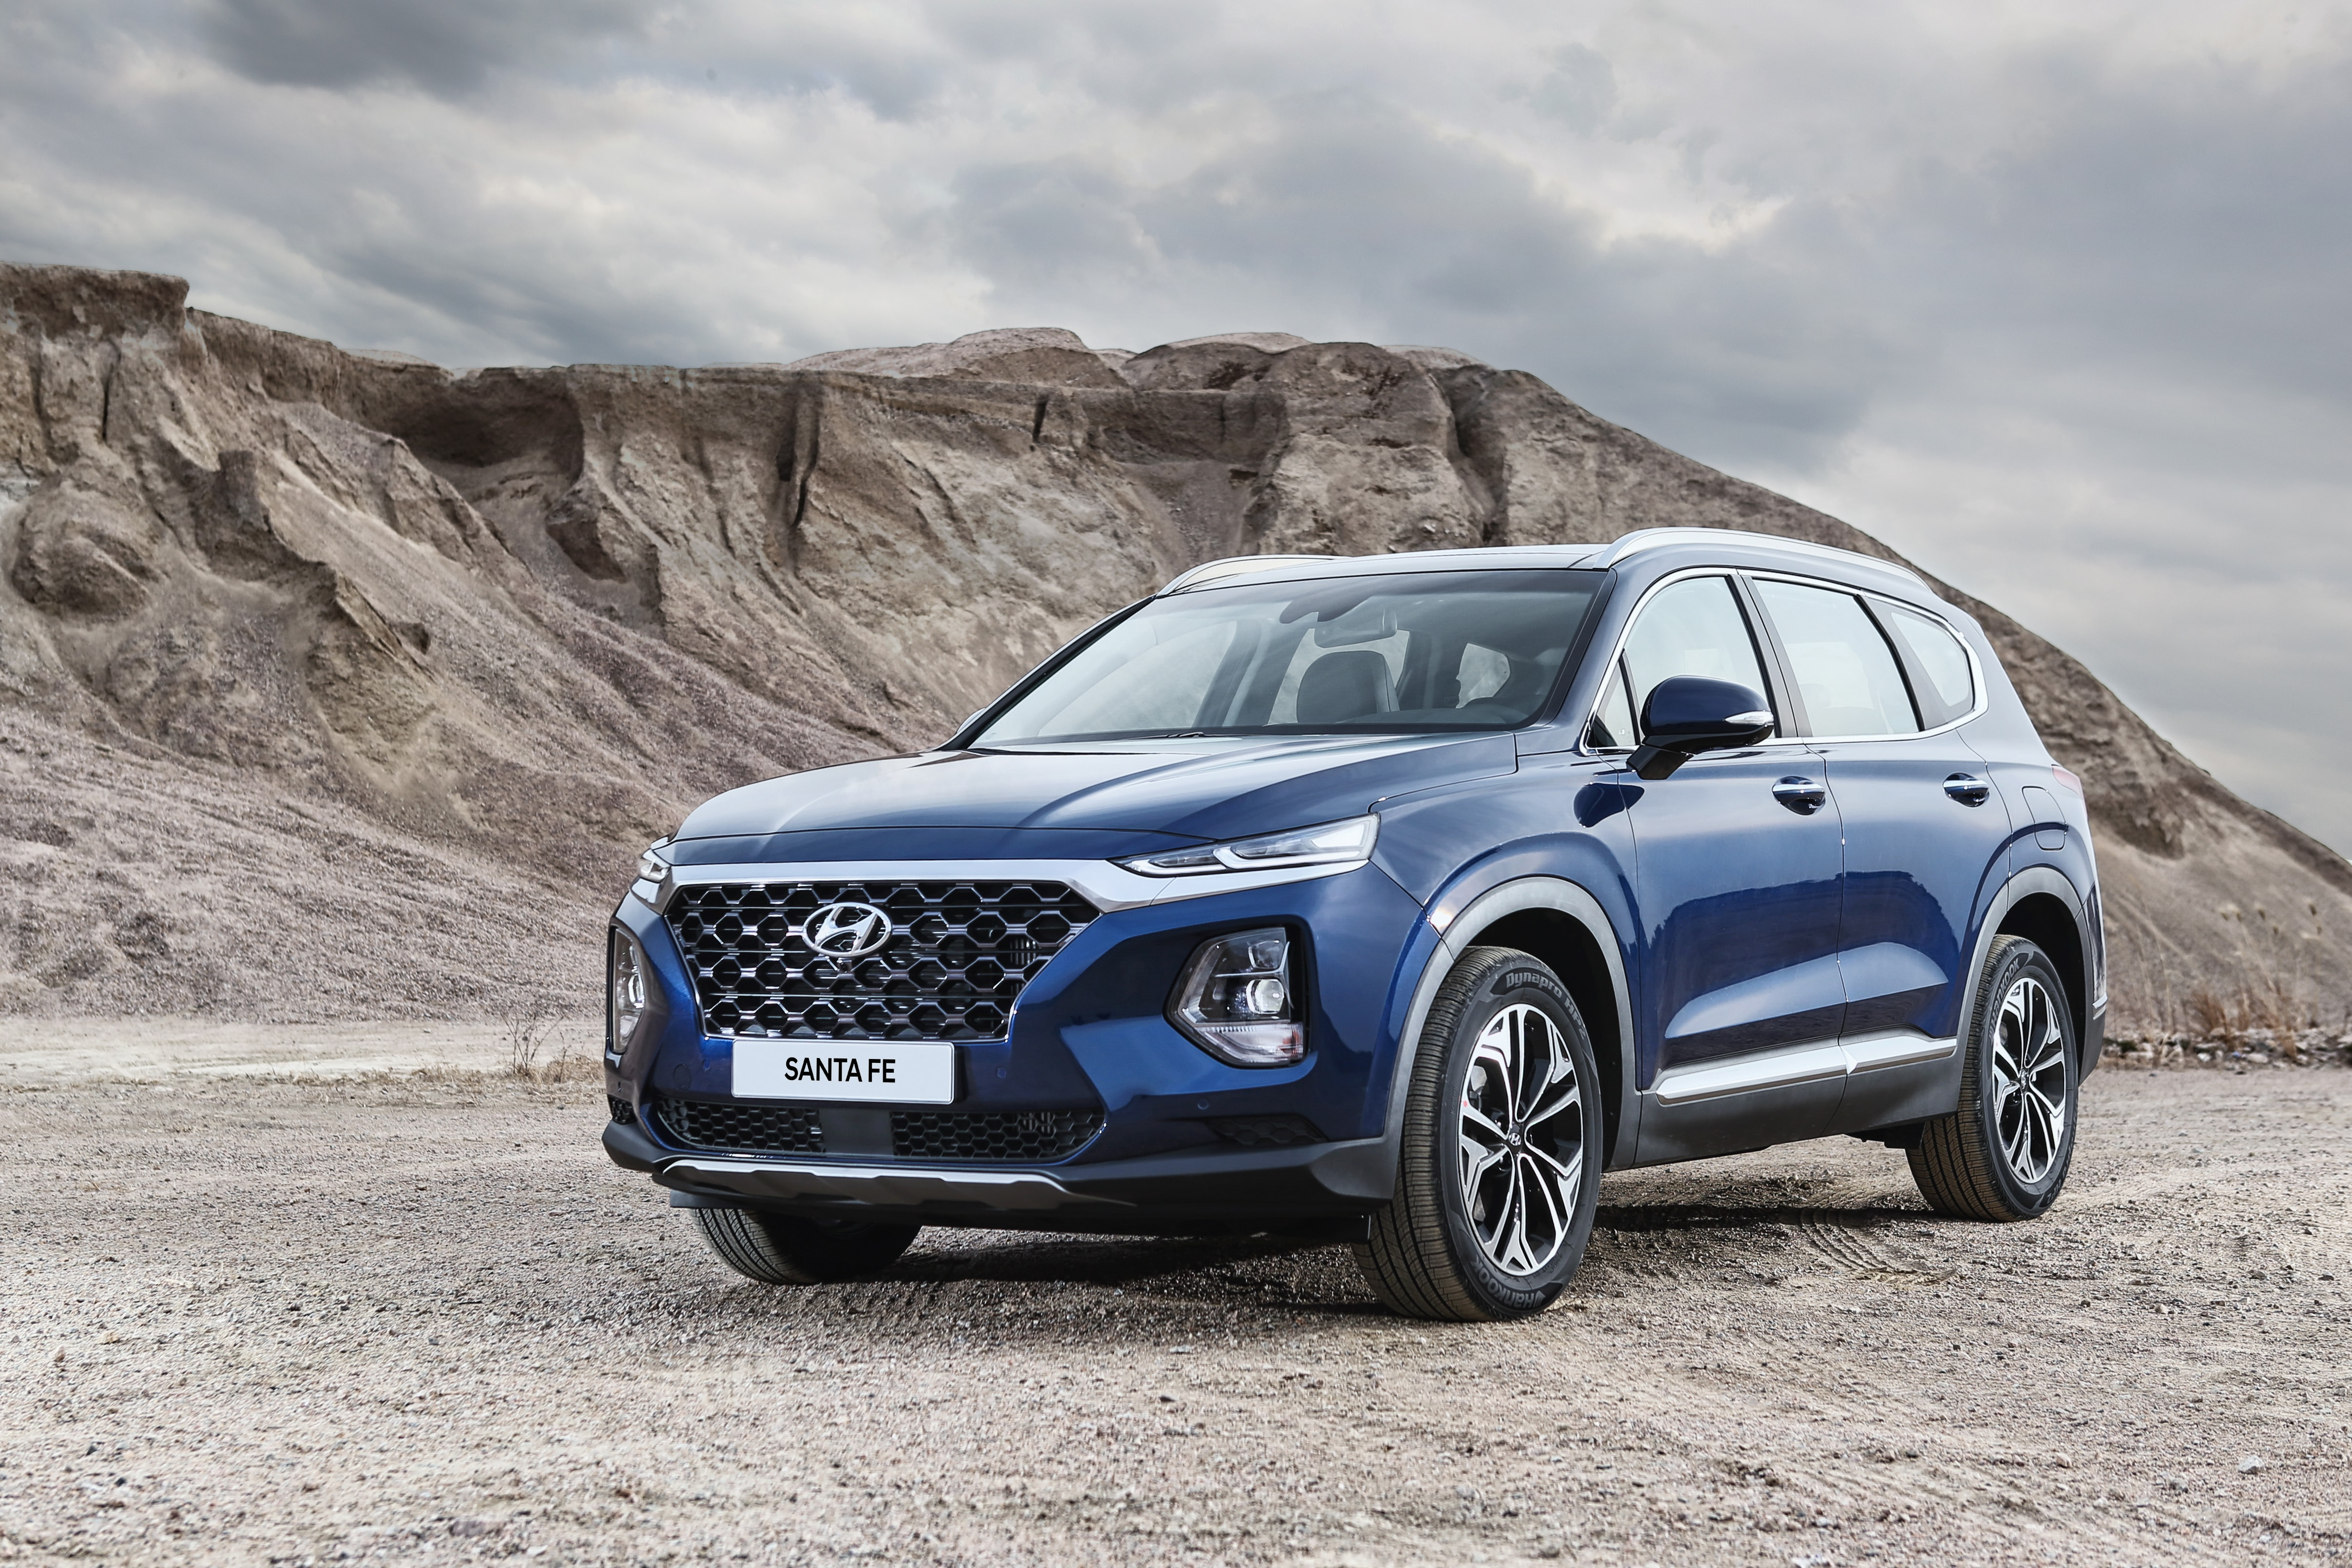 The 2019 Hyundai Santa Fe Challenges the Competition